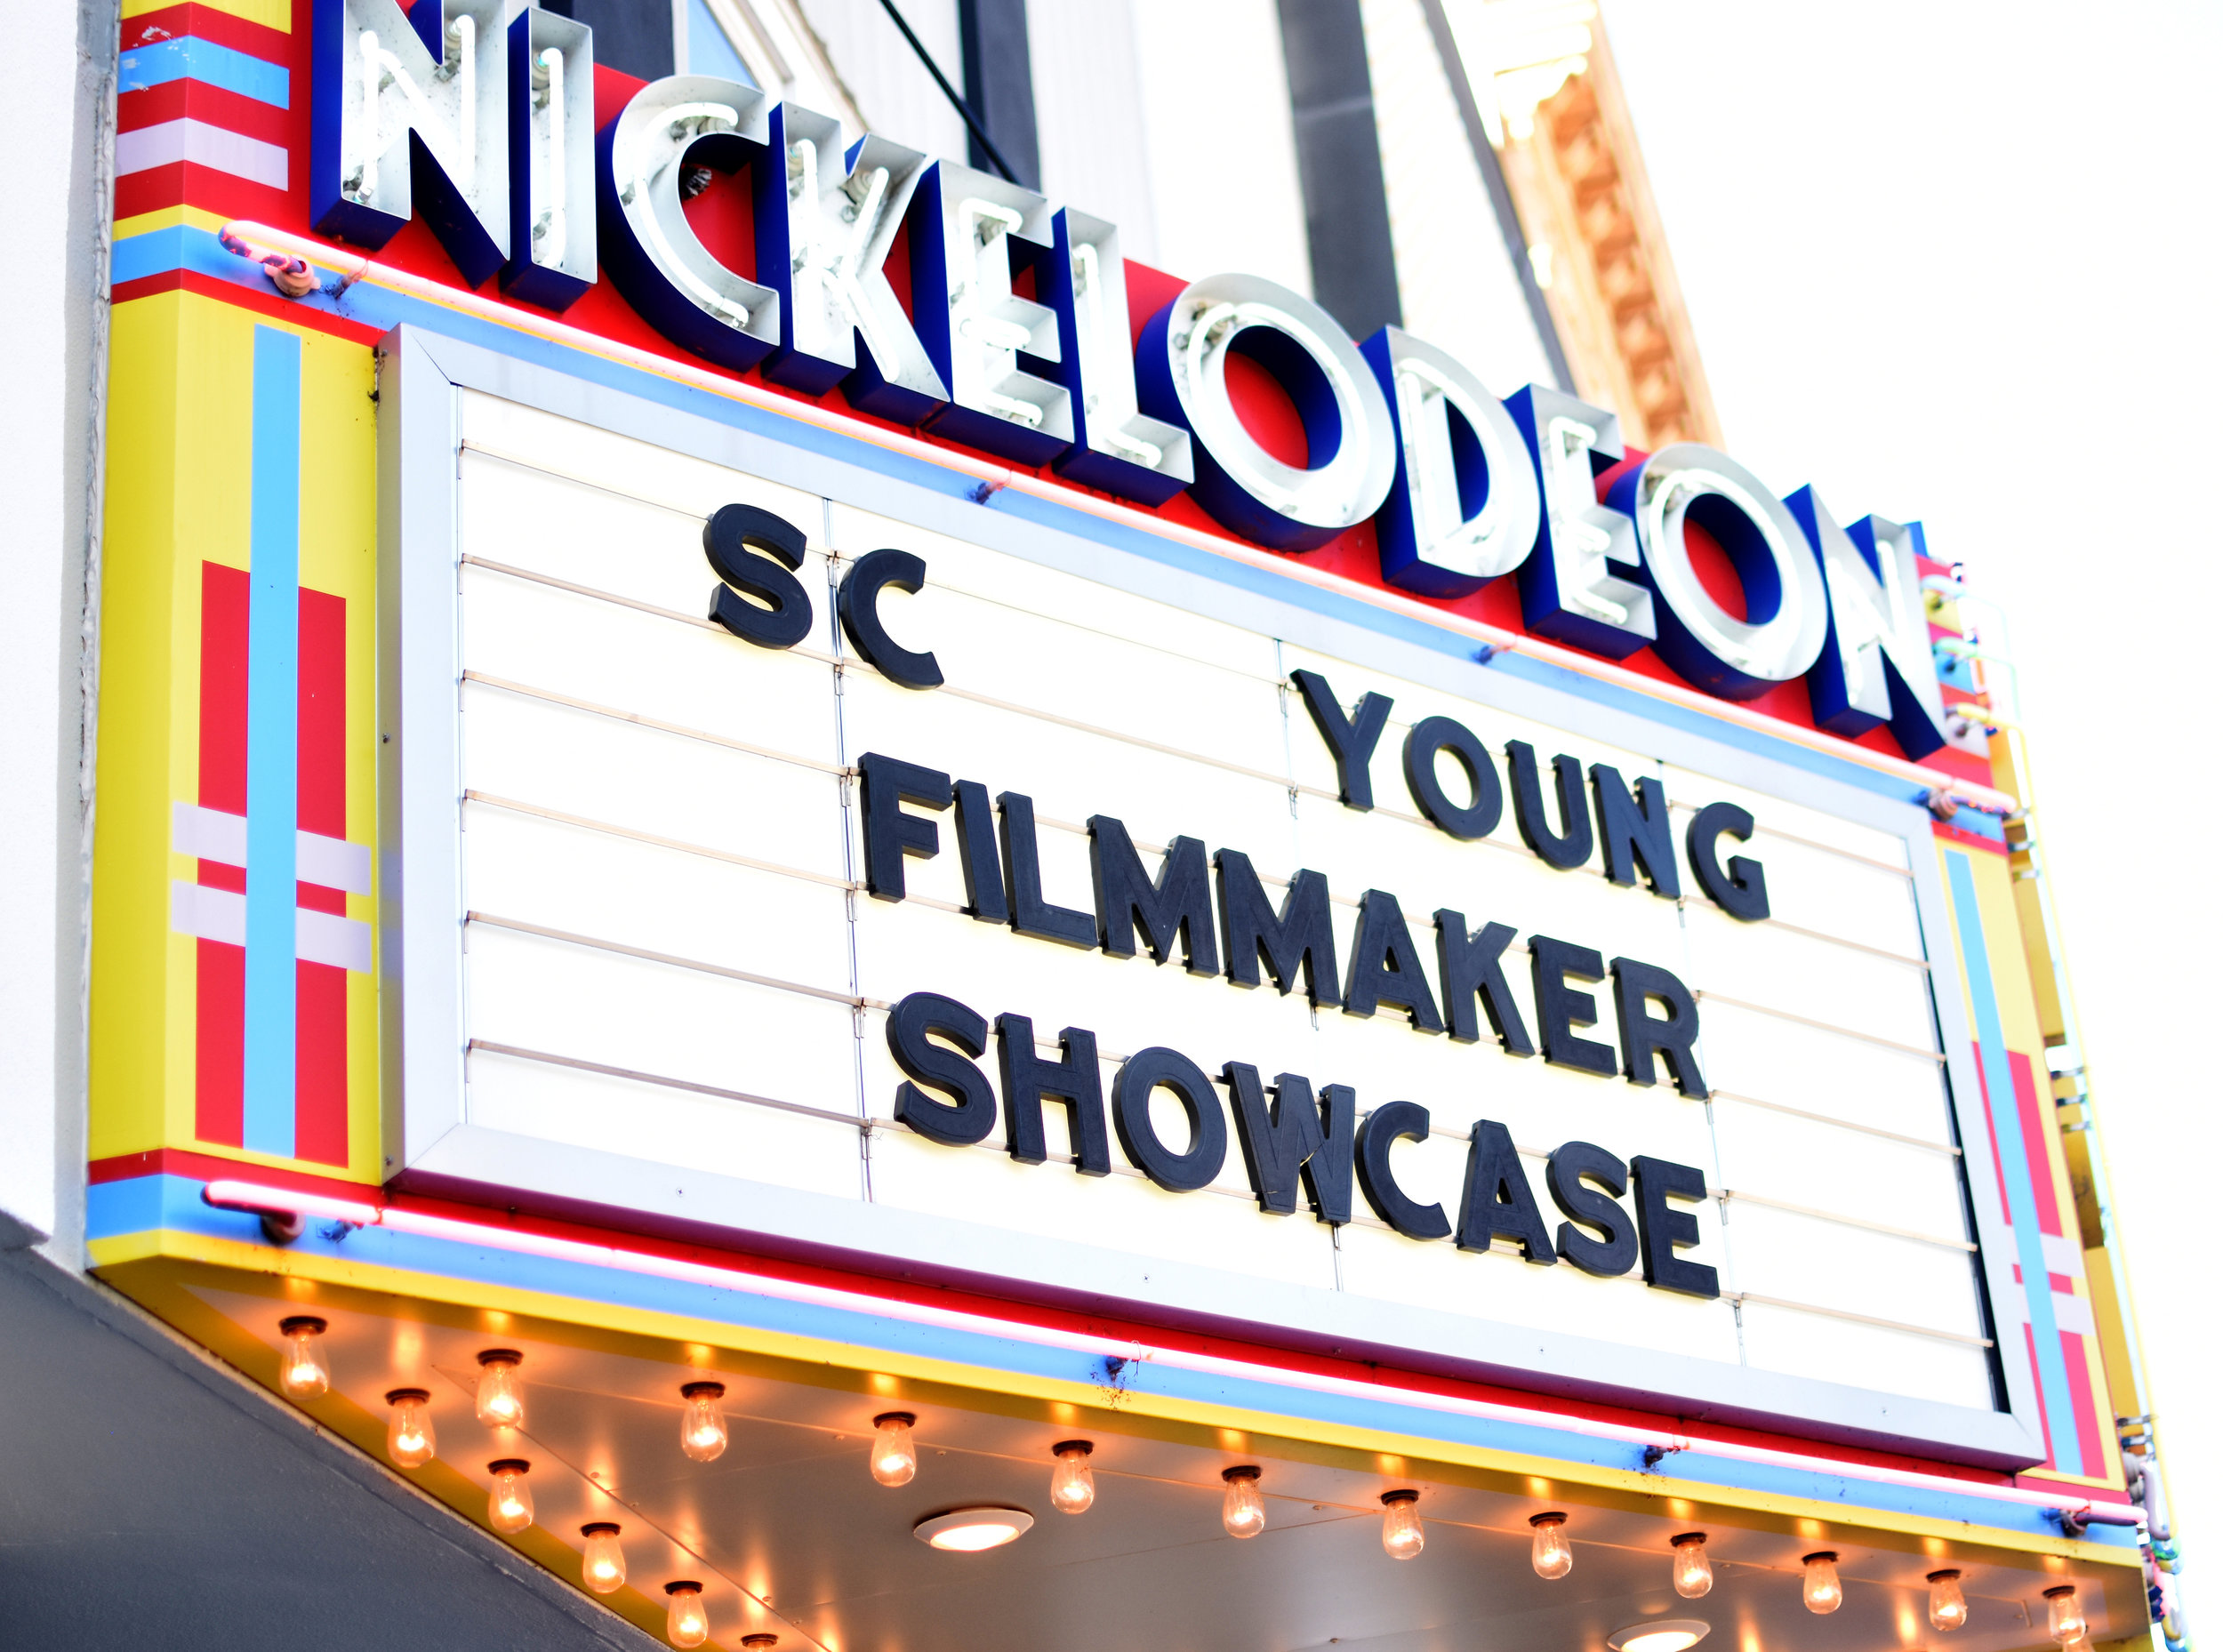 The Top Ten YFP Screening at the Nickelodeon Theater in Columbia.